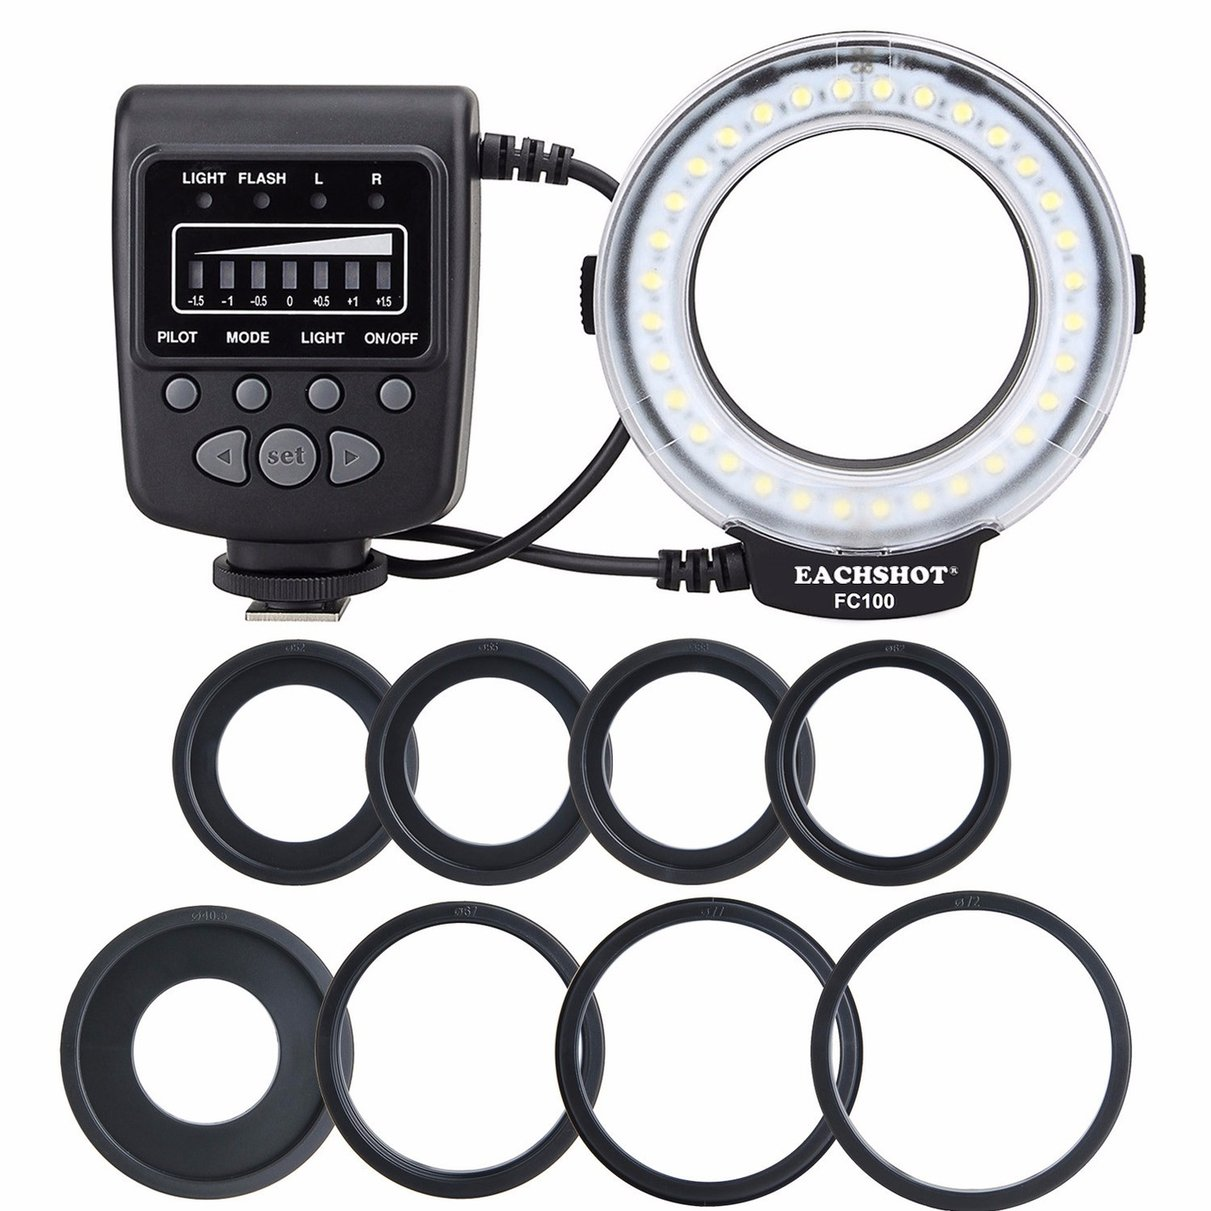 Meike FC-100 FC100 Macro Ring Flash/Light MK FC 100 for Canon for EOS 650D 600D 60D 7D 550D 1100D T5i T4i T3i T3 купить футляр для canon eos 1100d